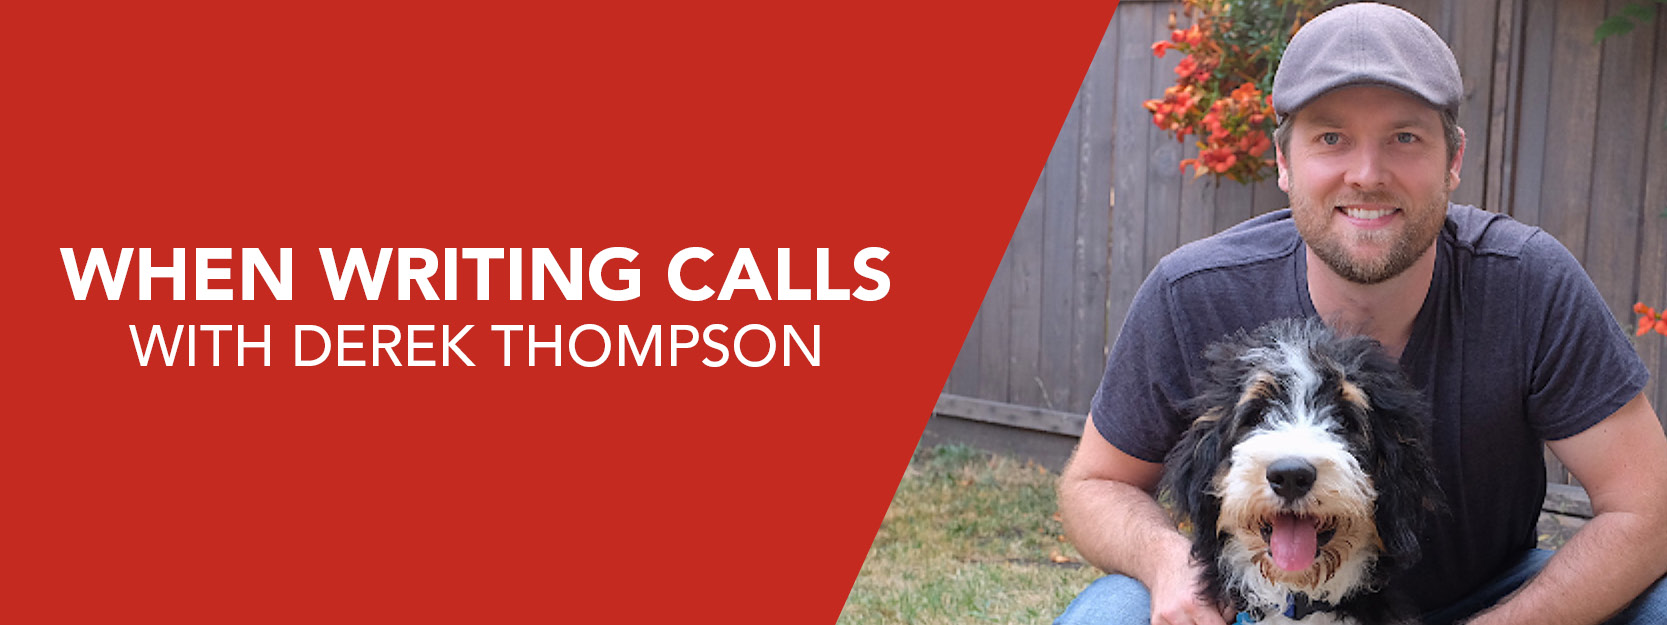 When Writing Calls with Derek Thompson